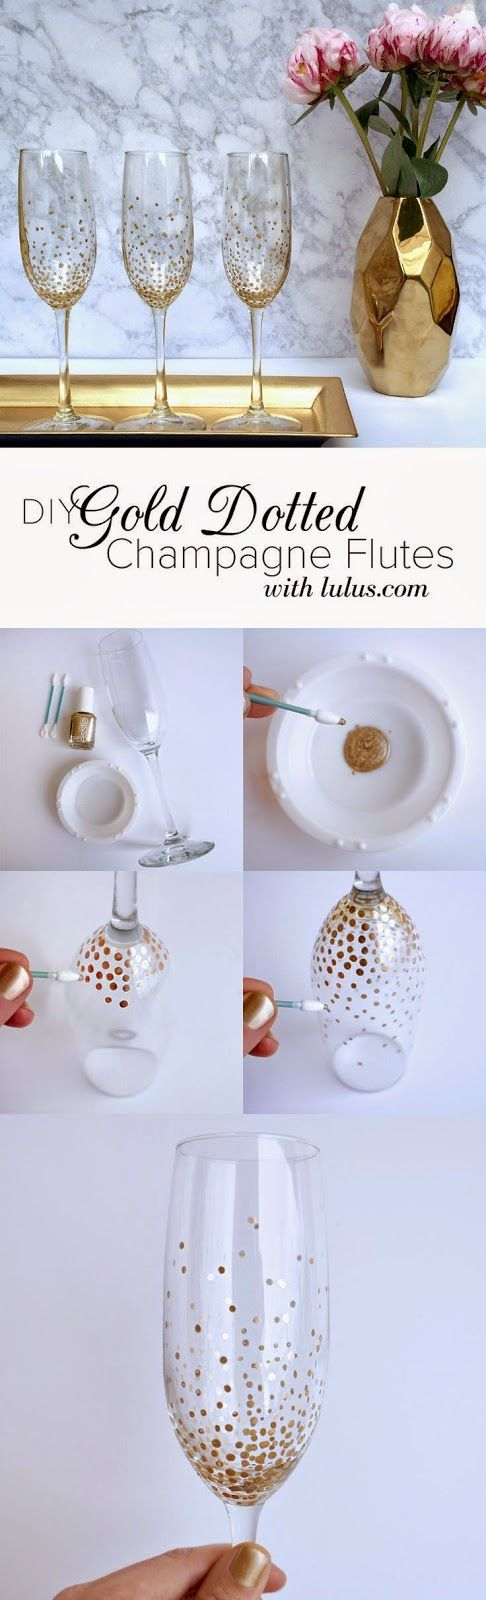 #Cocoscollections: DIY gold dotted wine glasses.